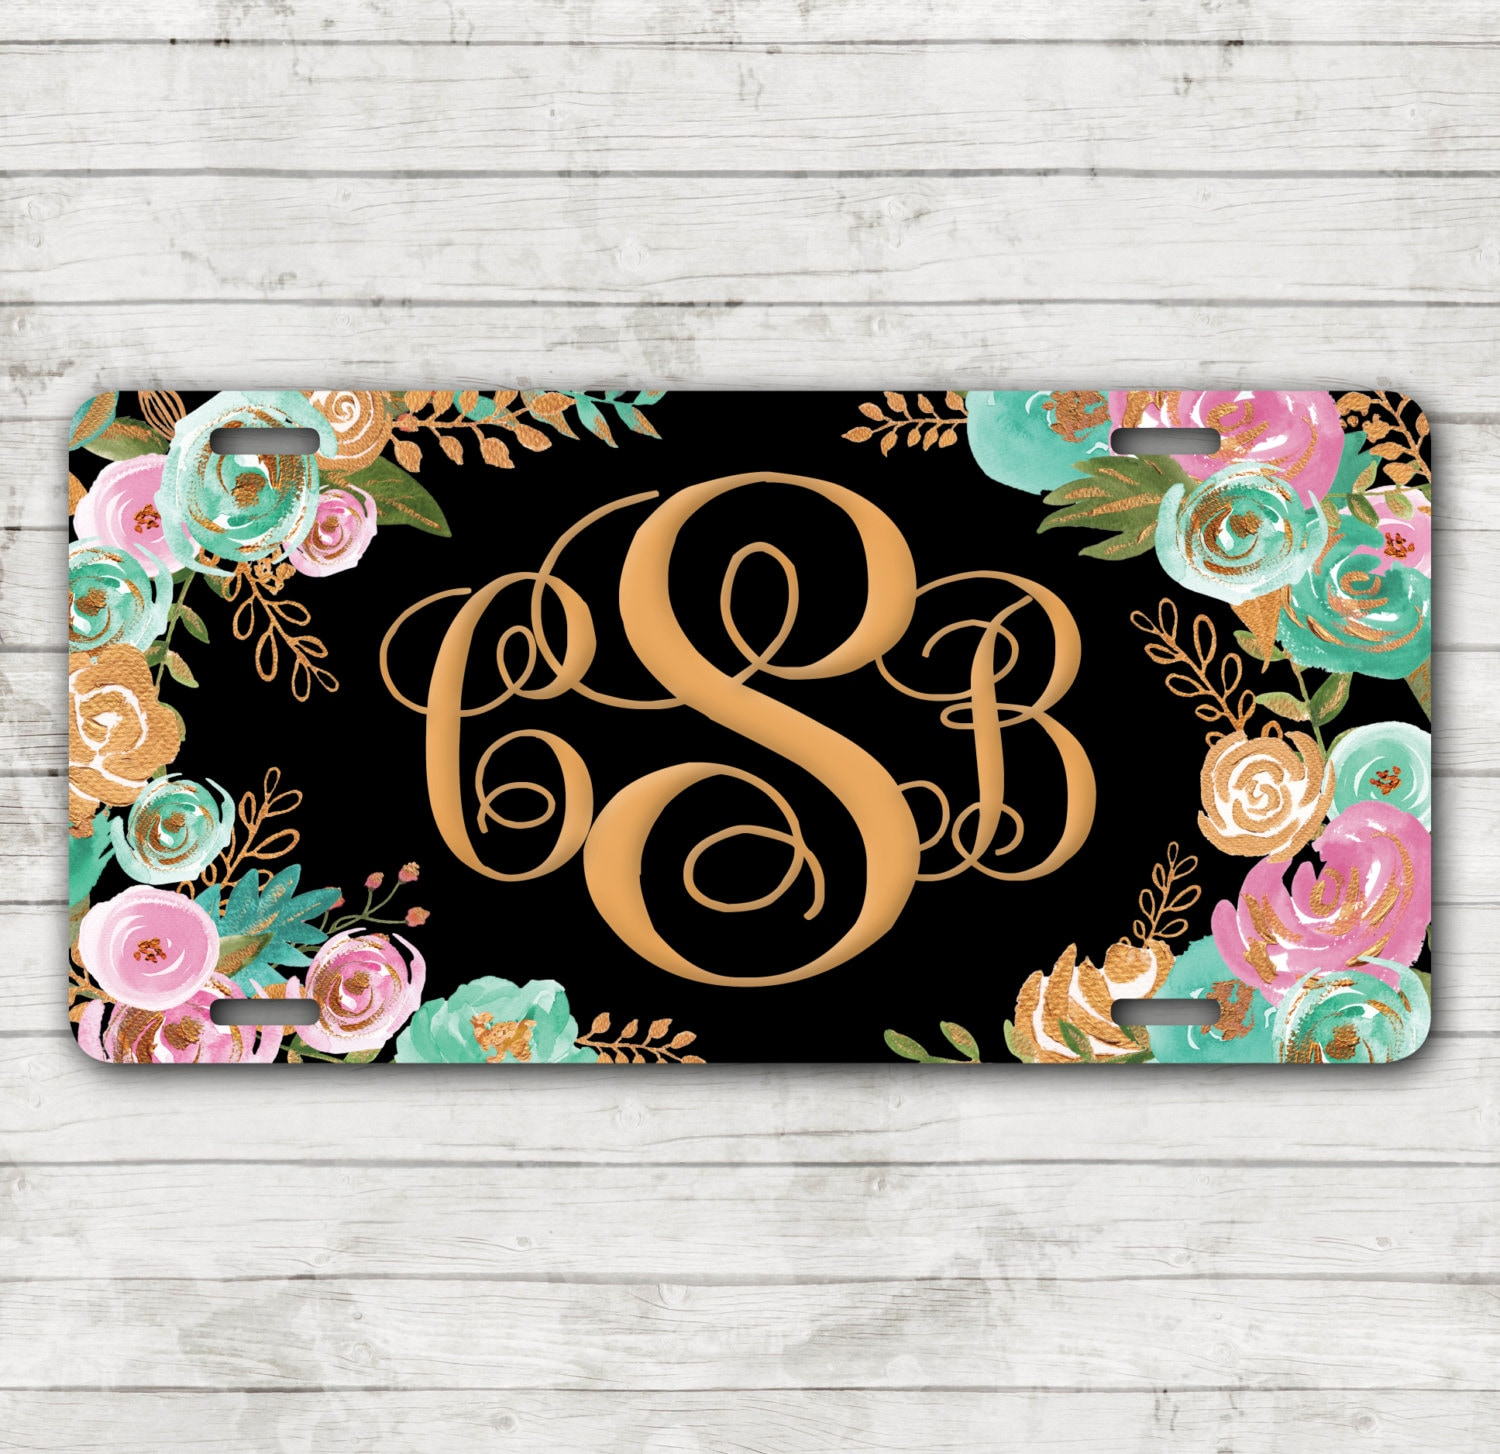 Classy Mint & Gold Floral Front License Plate Personalized